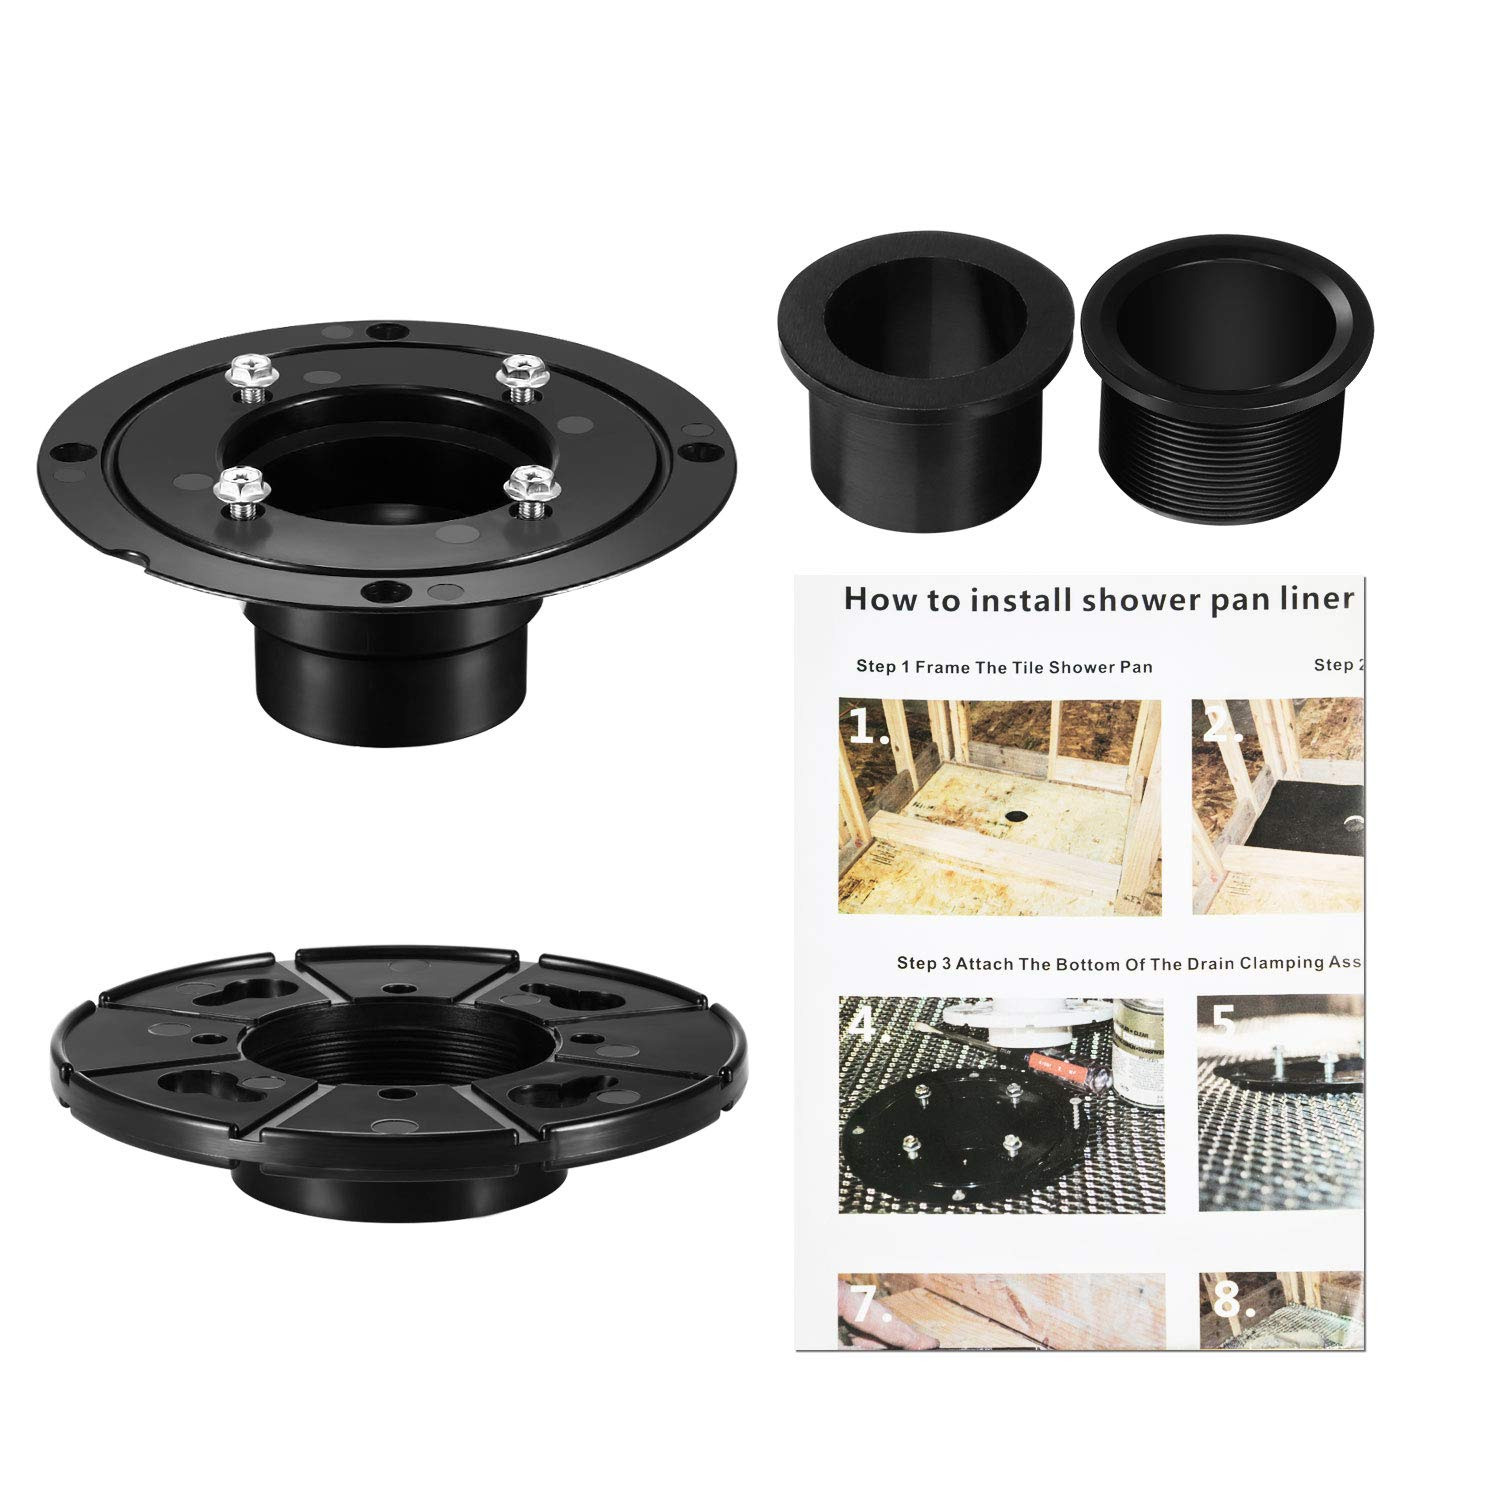 Jetec ABS Shower Drain Base Kit Include 2 Inches PVC Shower Drain Base Flange, Threaded Adjustable Adaptor and Rubber Coupler Gasket for Linear Shower Drain Installation by Jetec (Image #7)